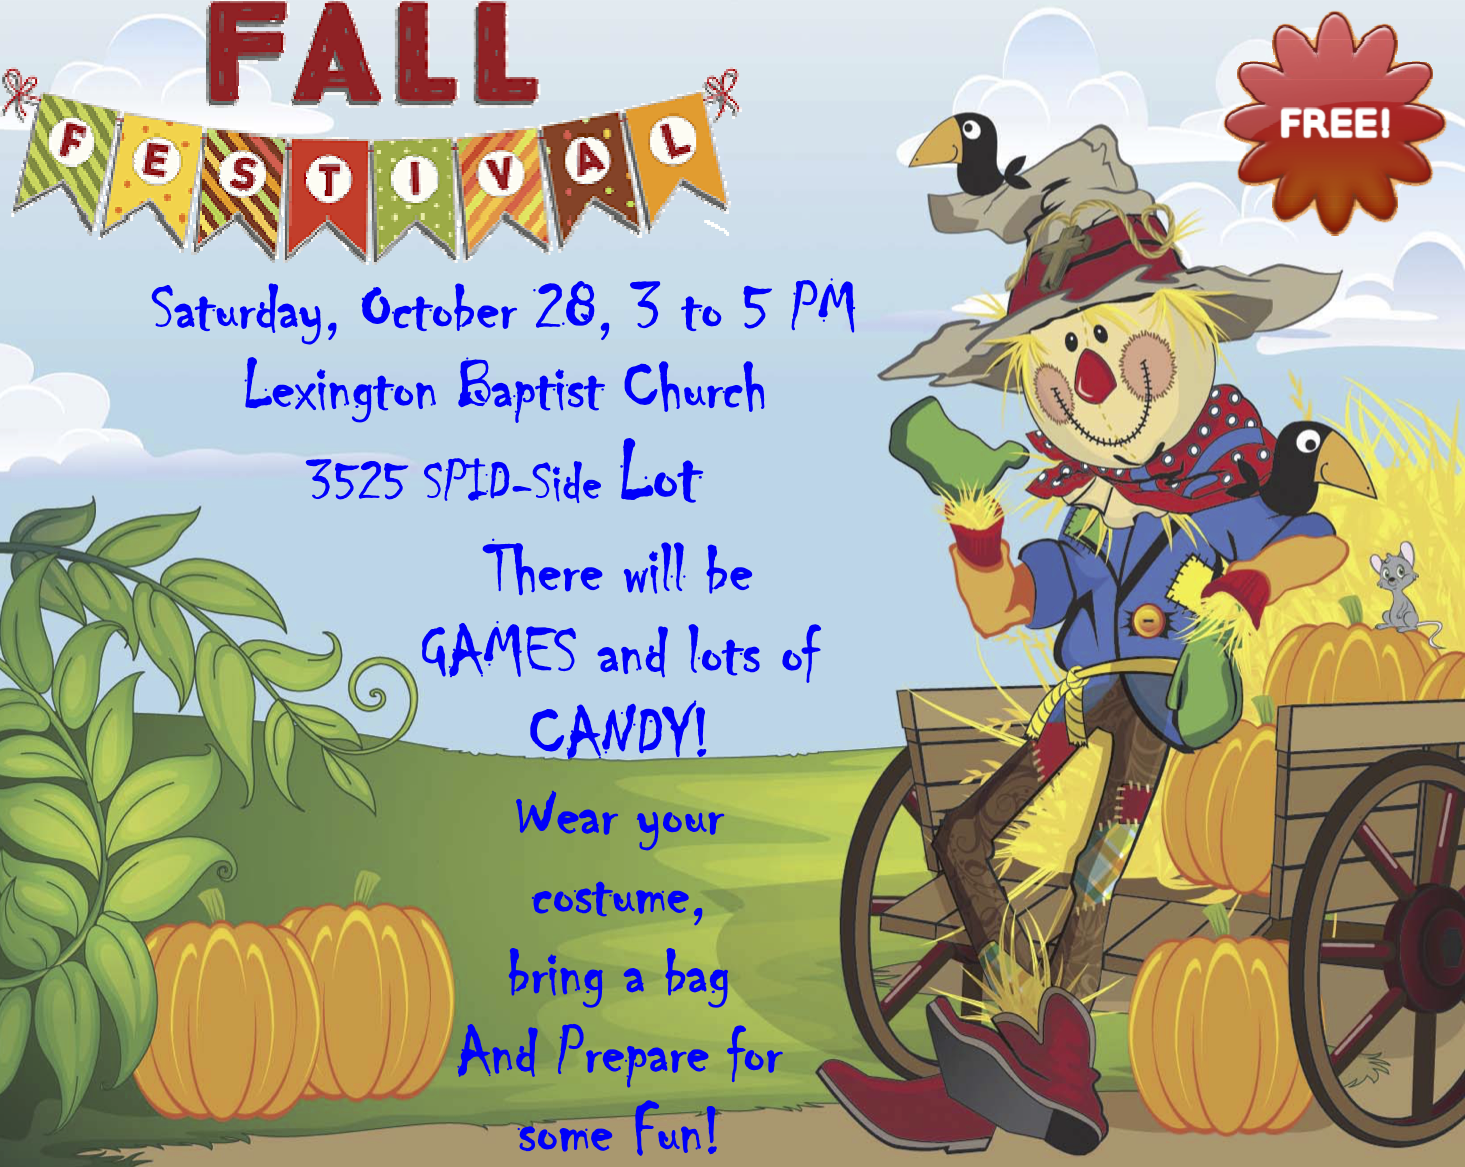 downtown corpus christi lexington baptist church fall festival from 3 to 5 pm play games win candy wear your costumes bring a bag and prepare for fun - Halloween Stores In Corpus Christi